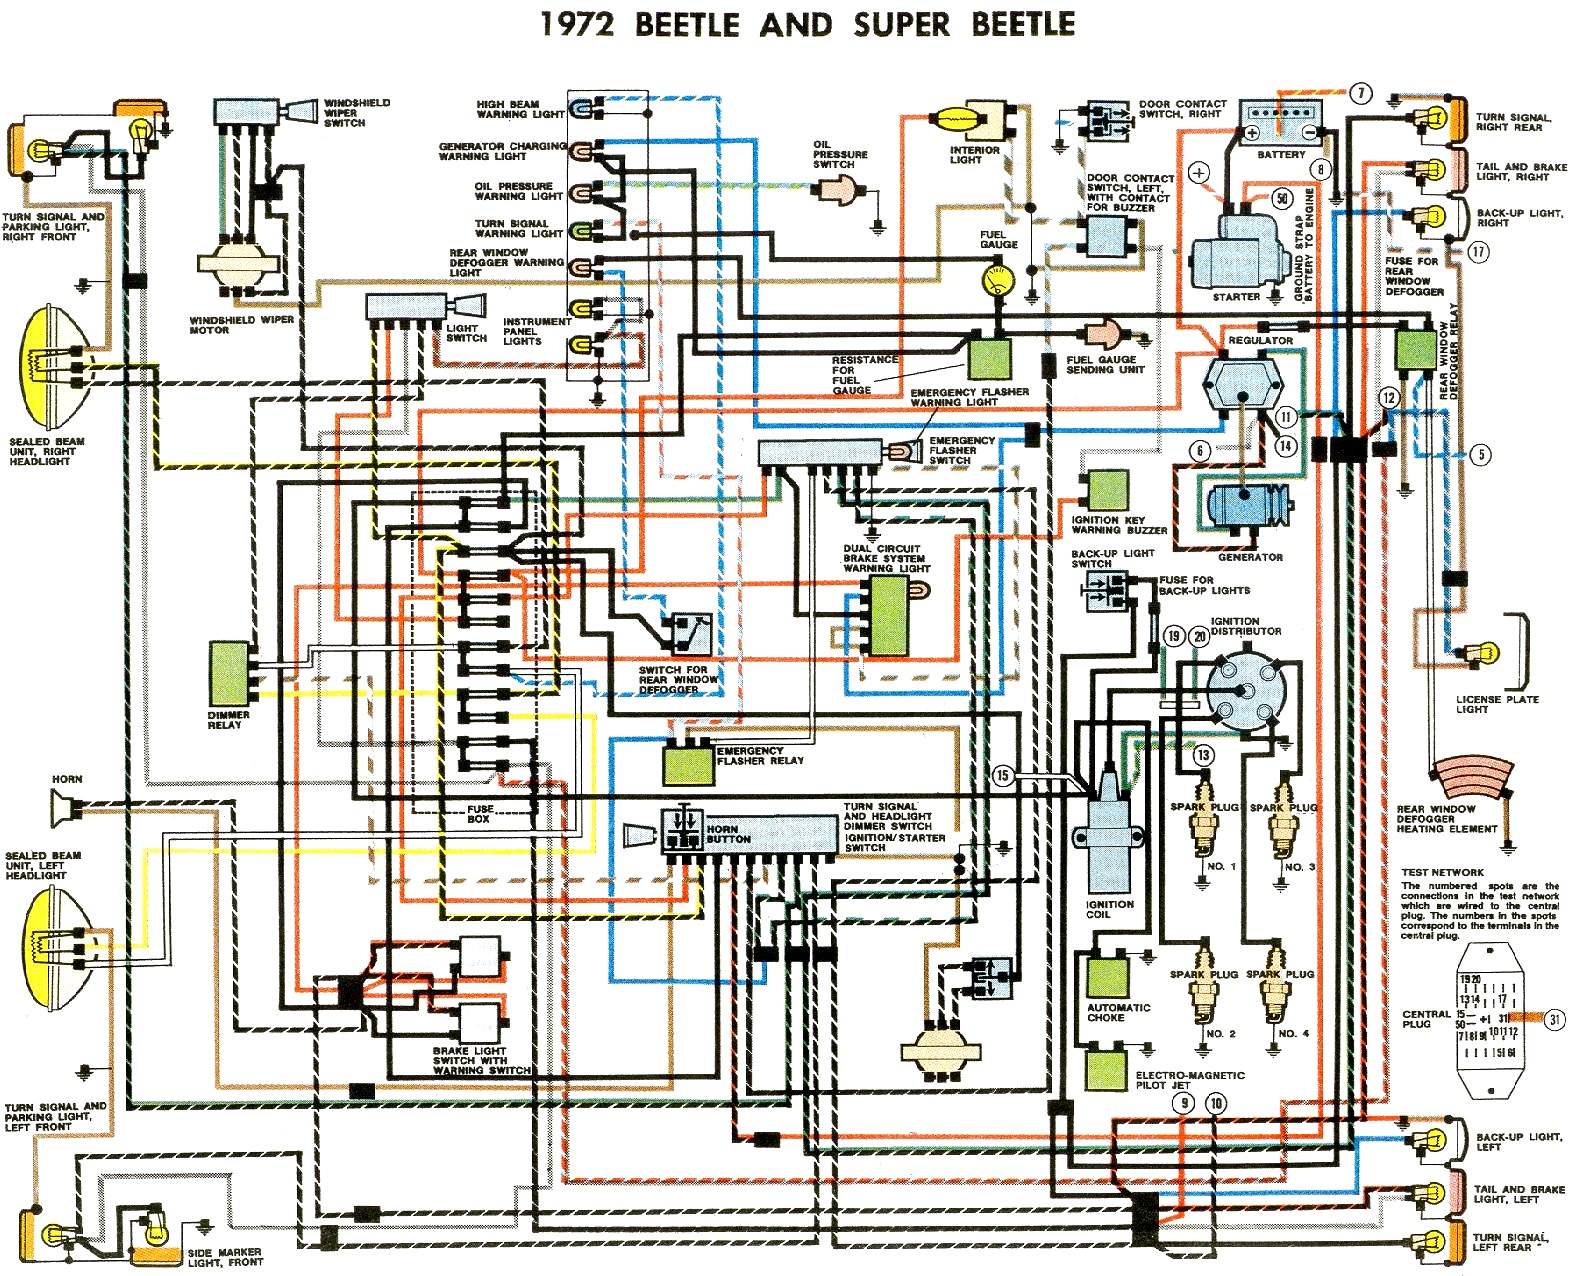 bug_72 vw bug wiring 1969 vw starter wiring diagram \u2022 wiring diagrams j vw type 3 wiring harness at aneh.co